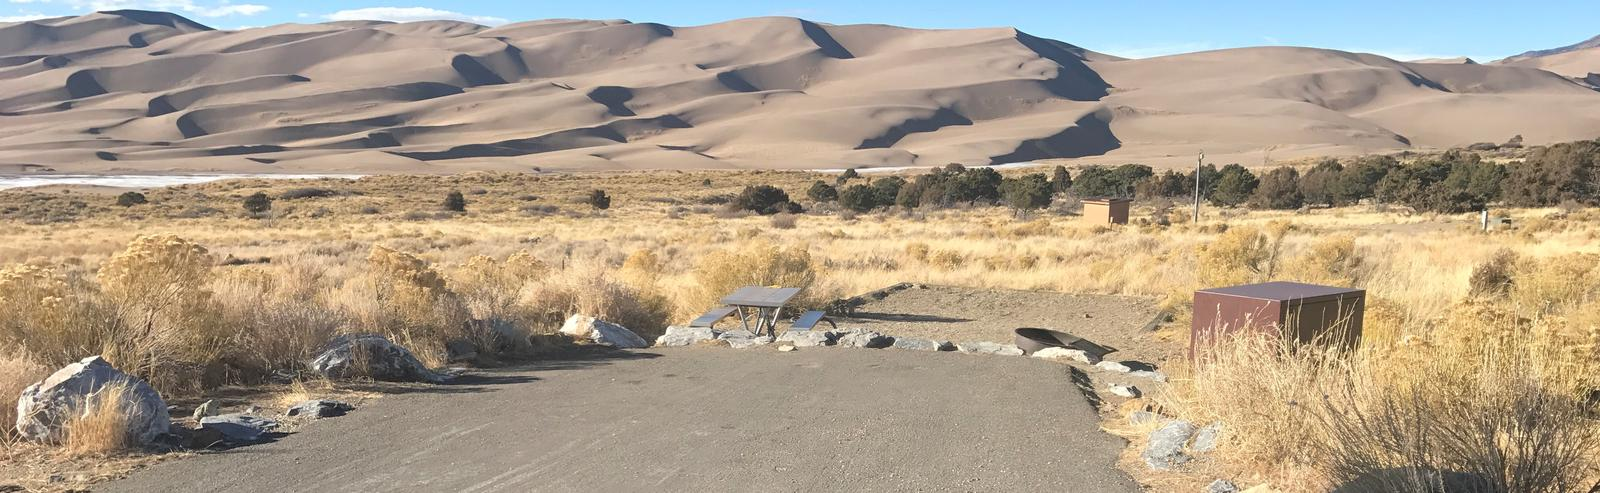 Wide view of Site #36 parking pad and designated tent pad. Great Sand Dunes in the background.Site #36, Pinon Flats Campground